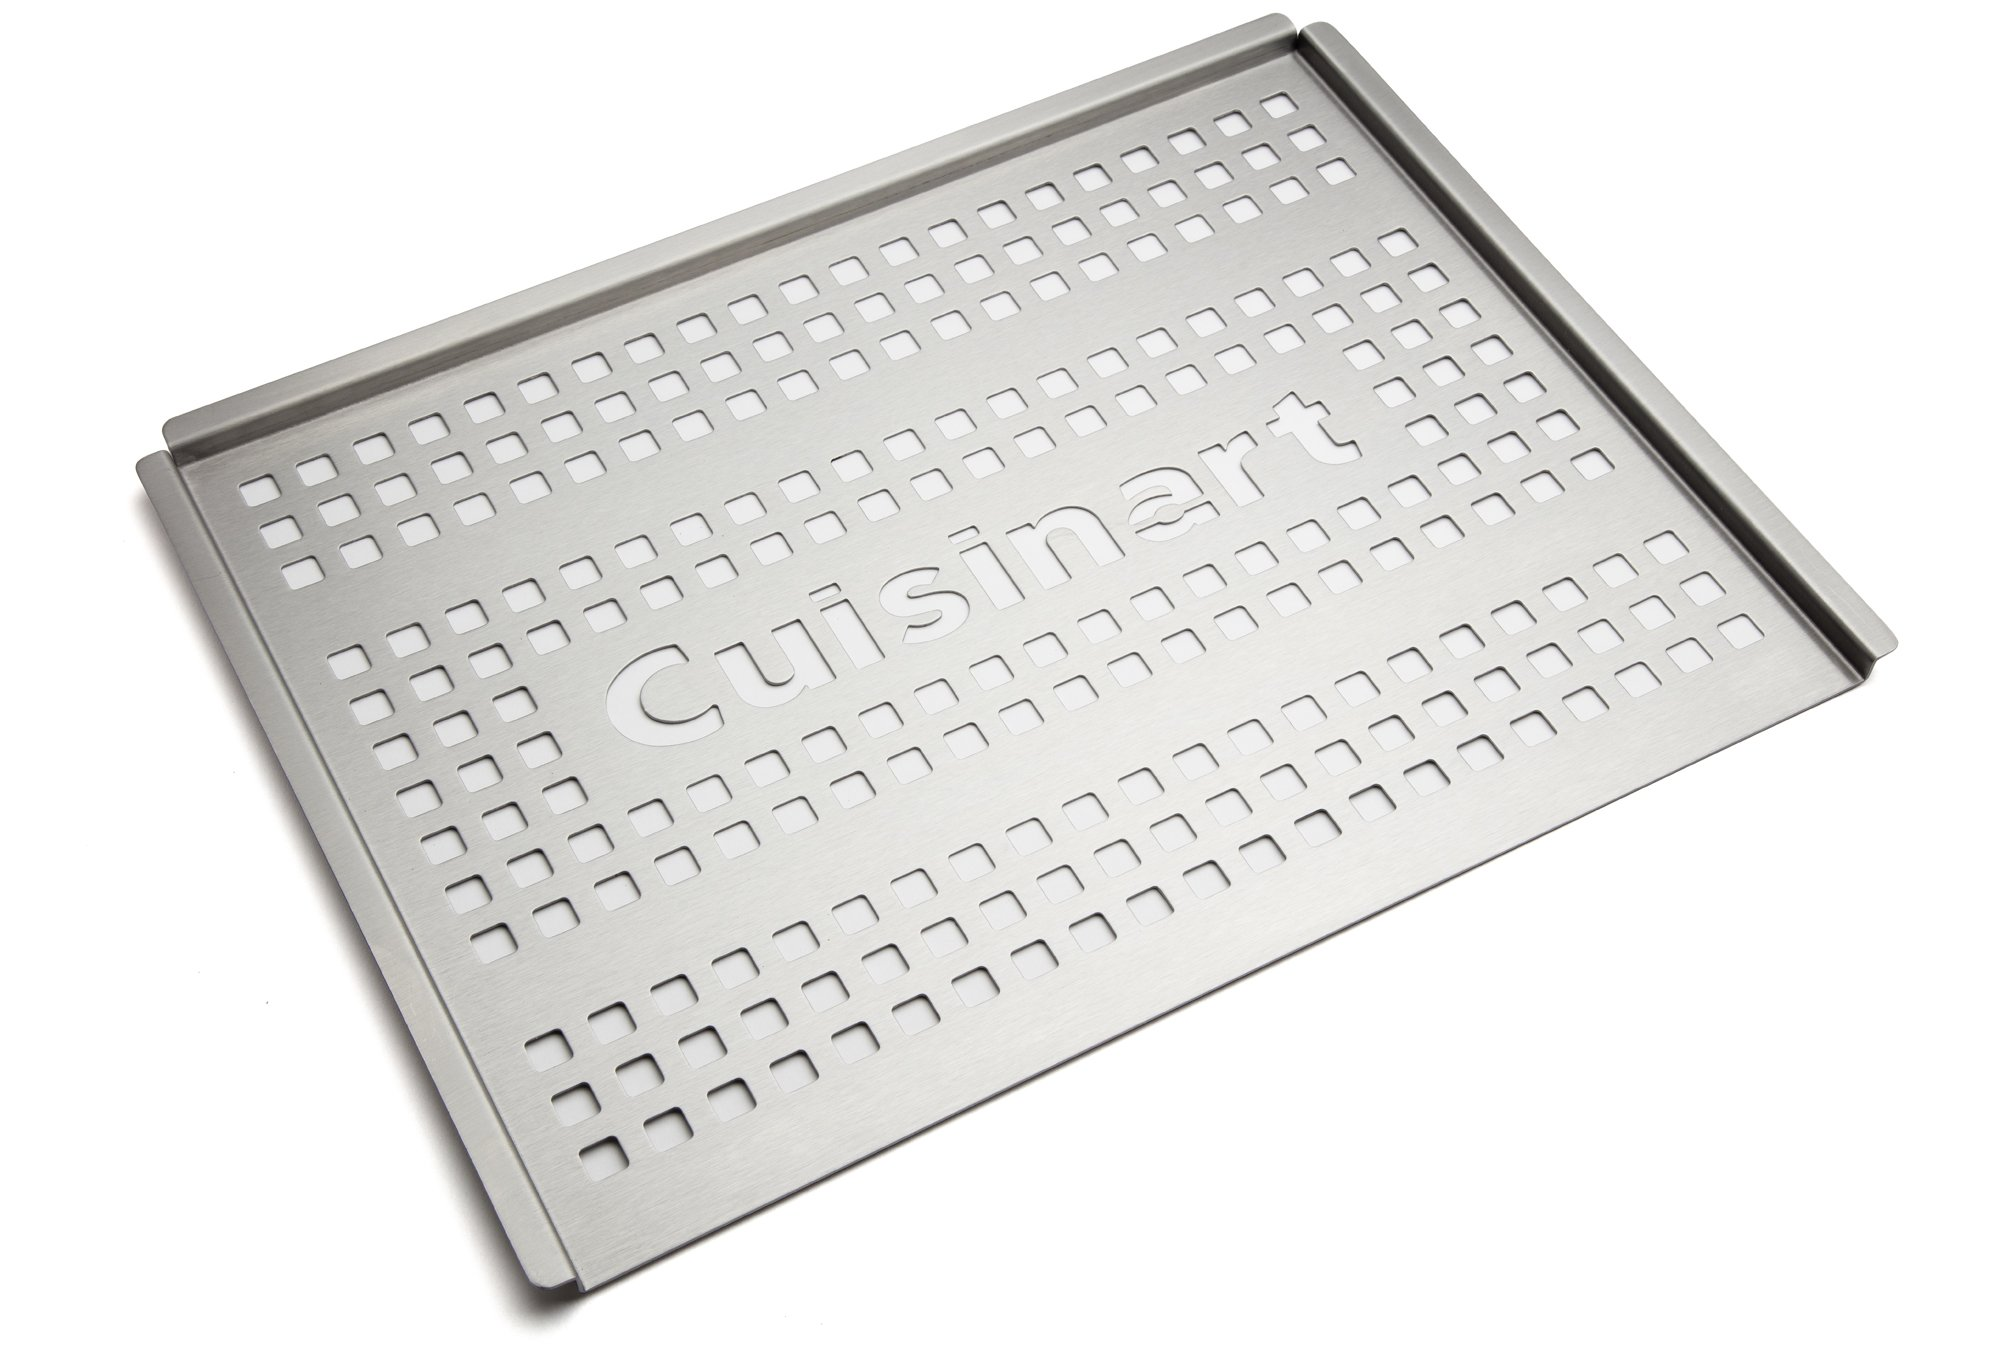 Cuisinart CGT-301 Stainless Steel Grill Topper, 12 x 16-Inch by Cuisinart